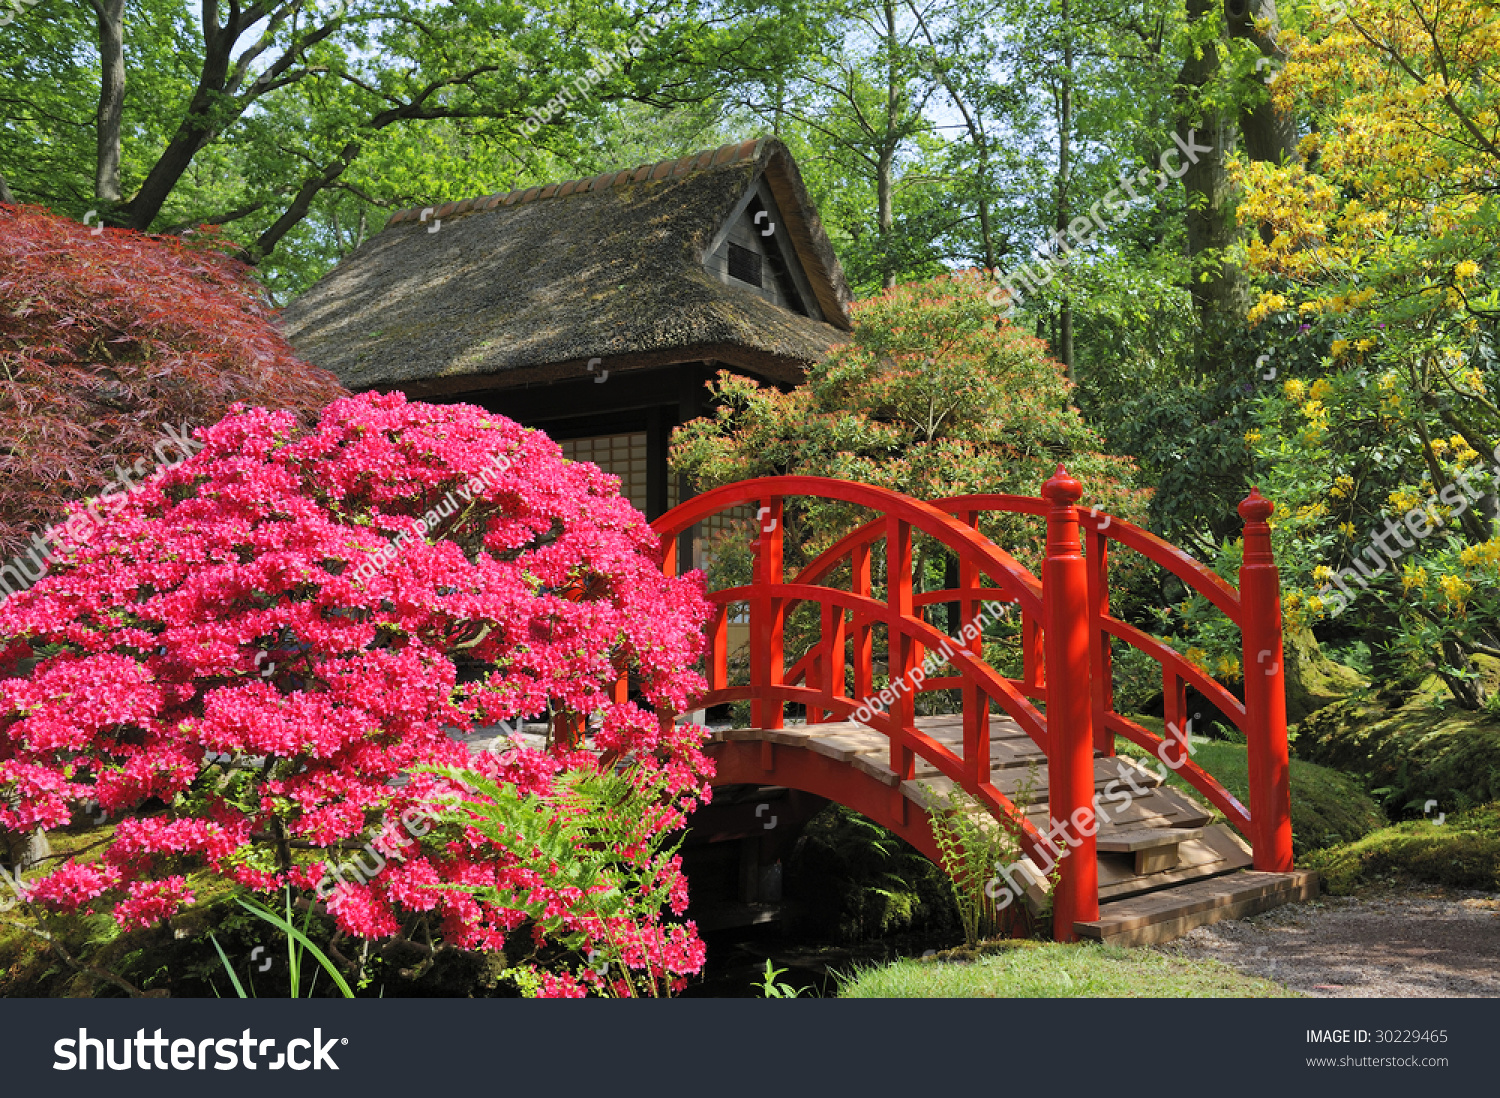 red japanese garden bridge japanese garden flowers red bridge stock photo - Red Japanese Garden Bridge